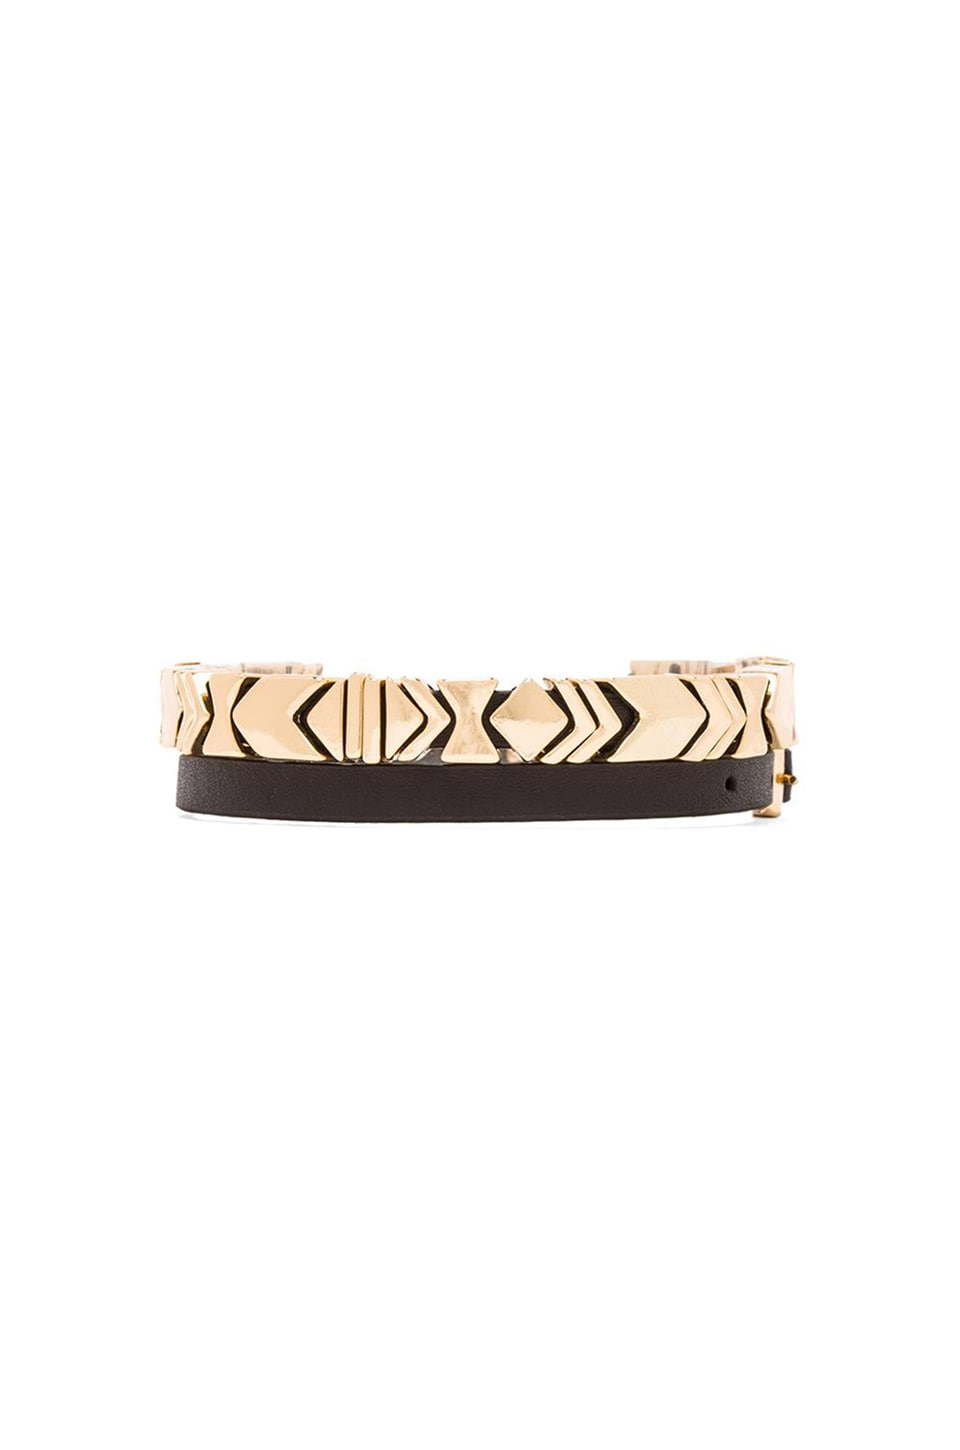 House of Harlow 1960 House of Harlow Aztec Wrap Bracelet in Gold/Black